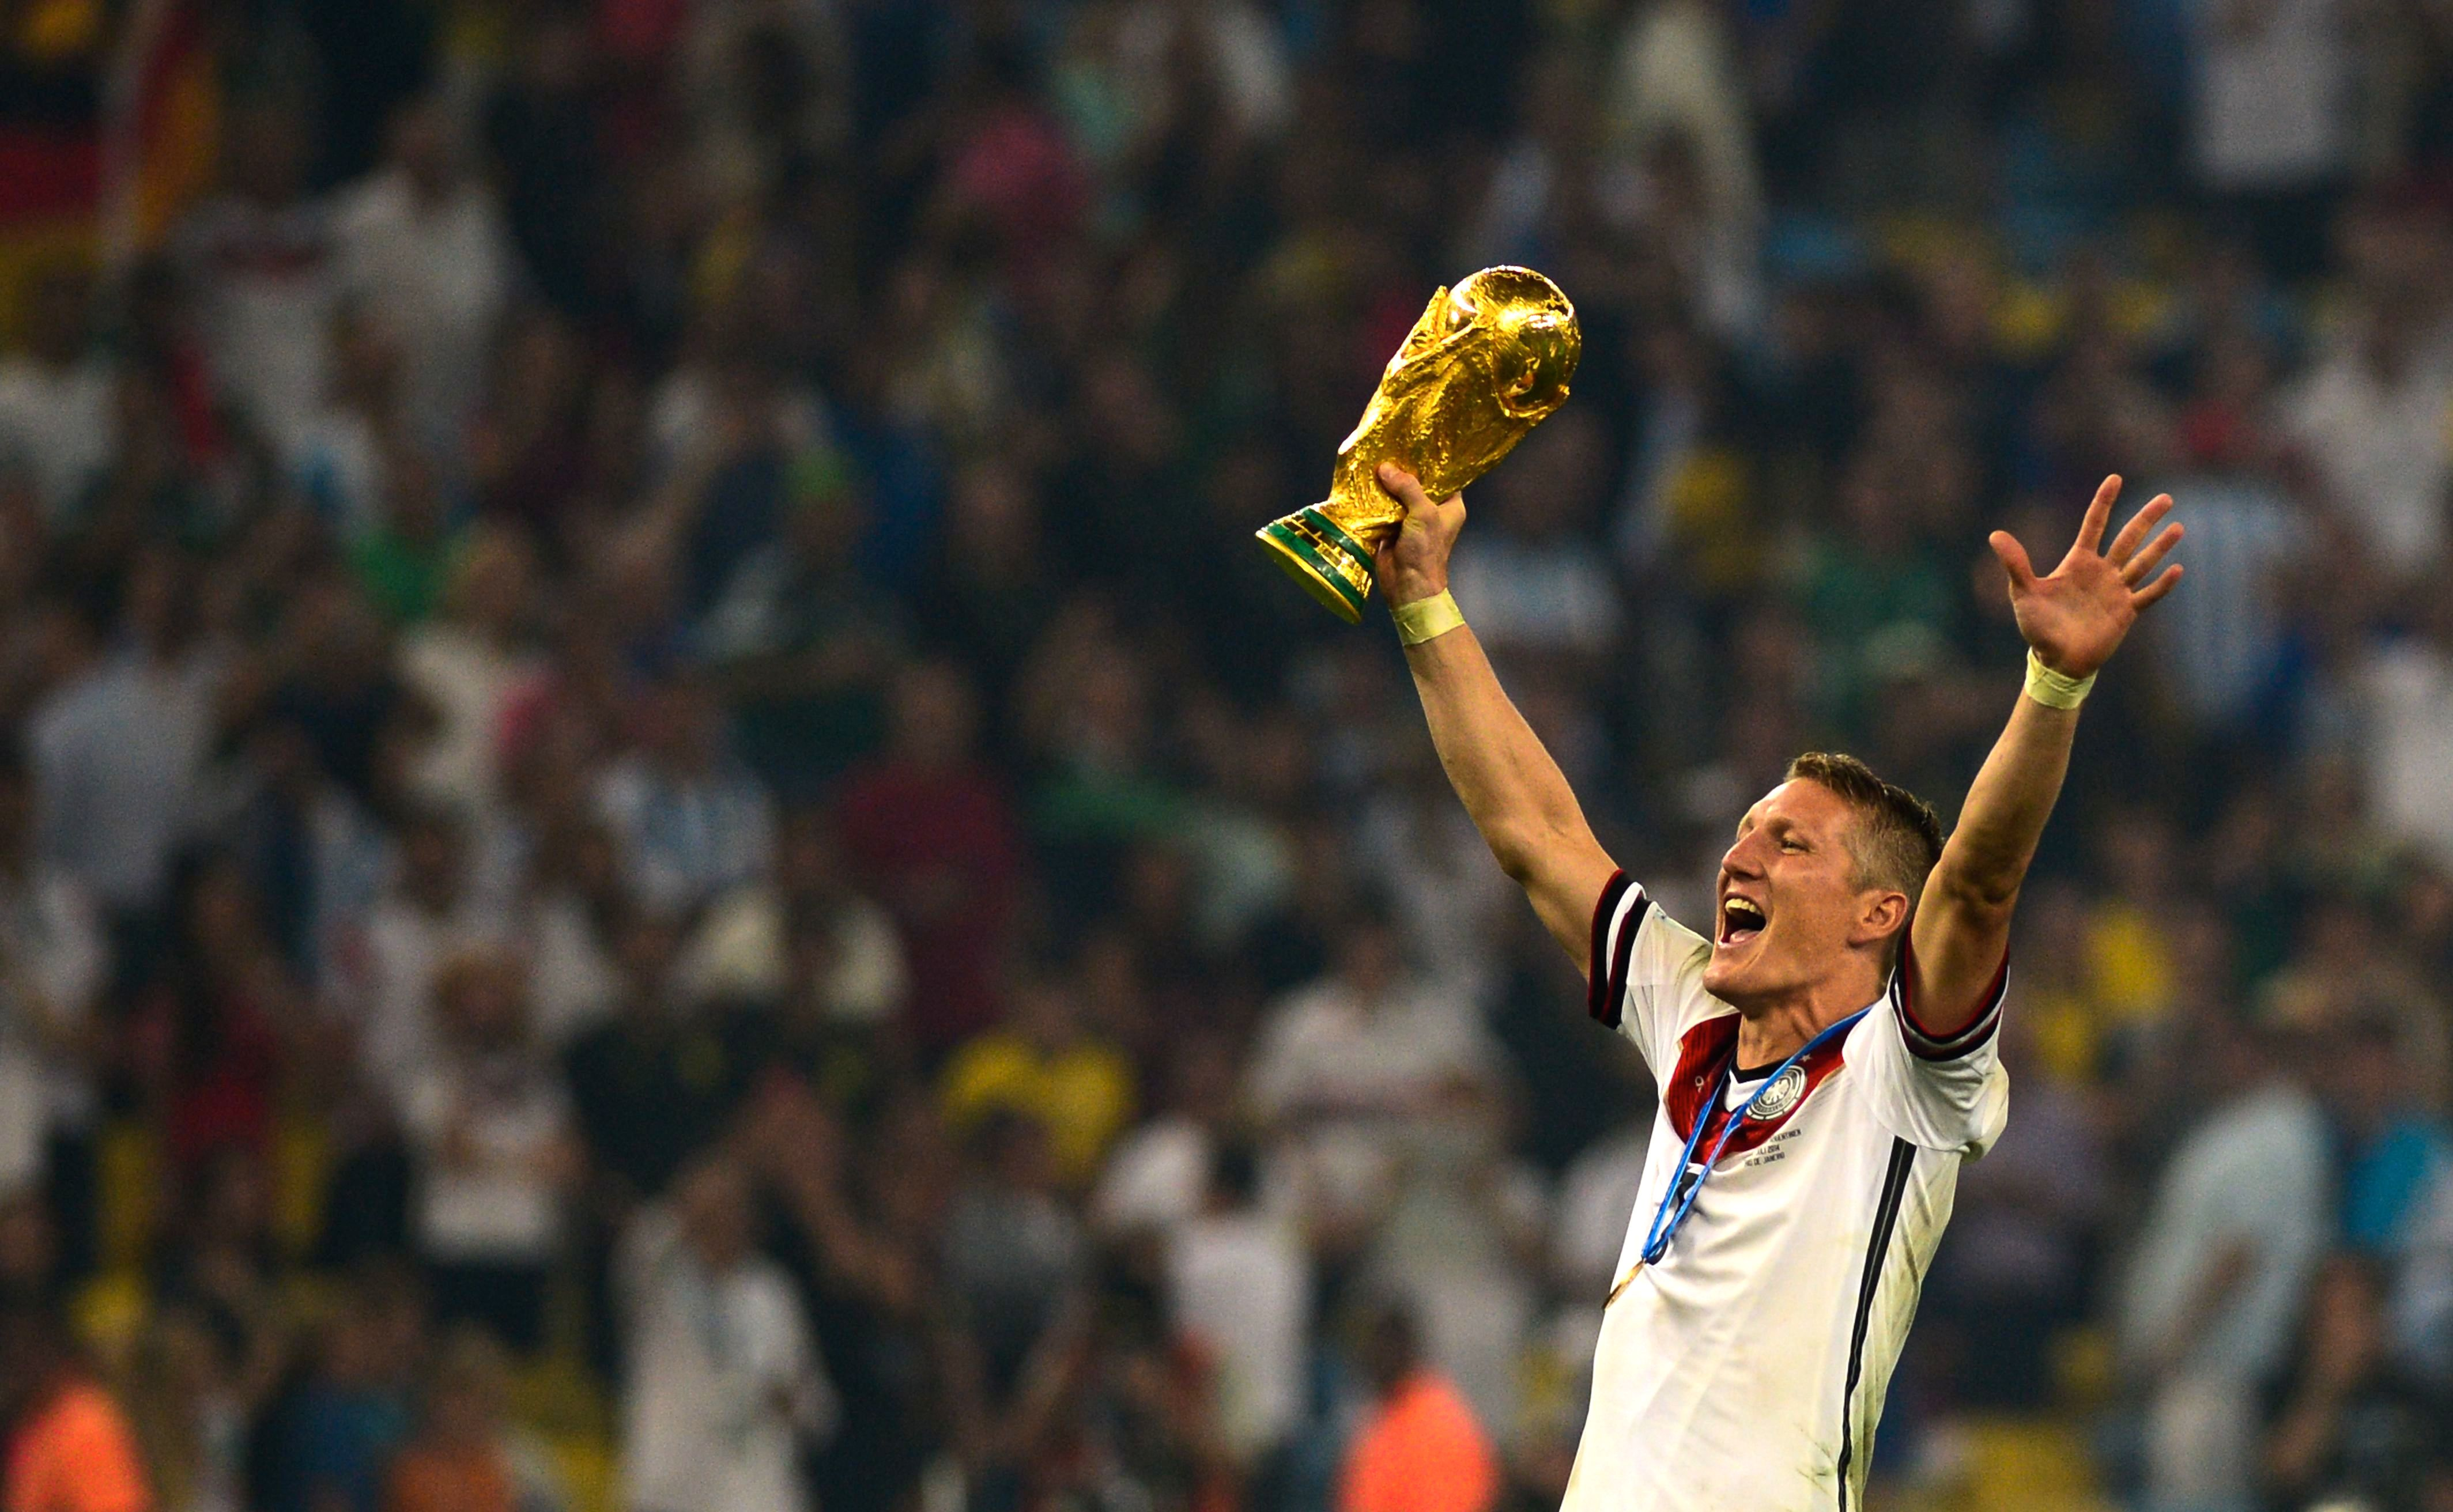 Bastian_Schweinsteiger_celebrates_at_the_2014_FIFA_World_Cup